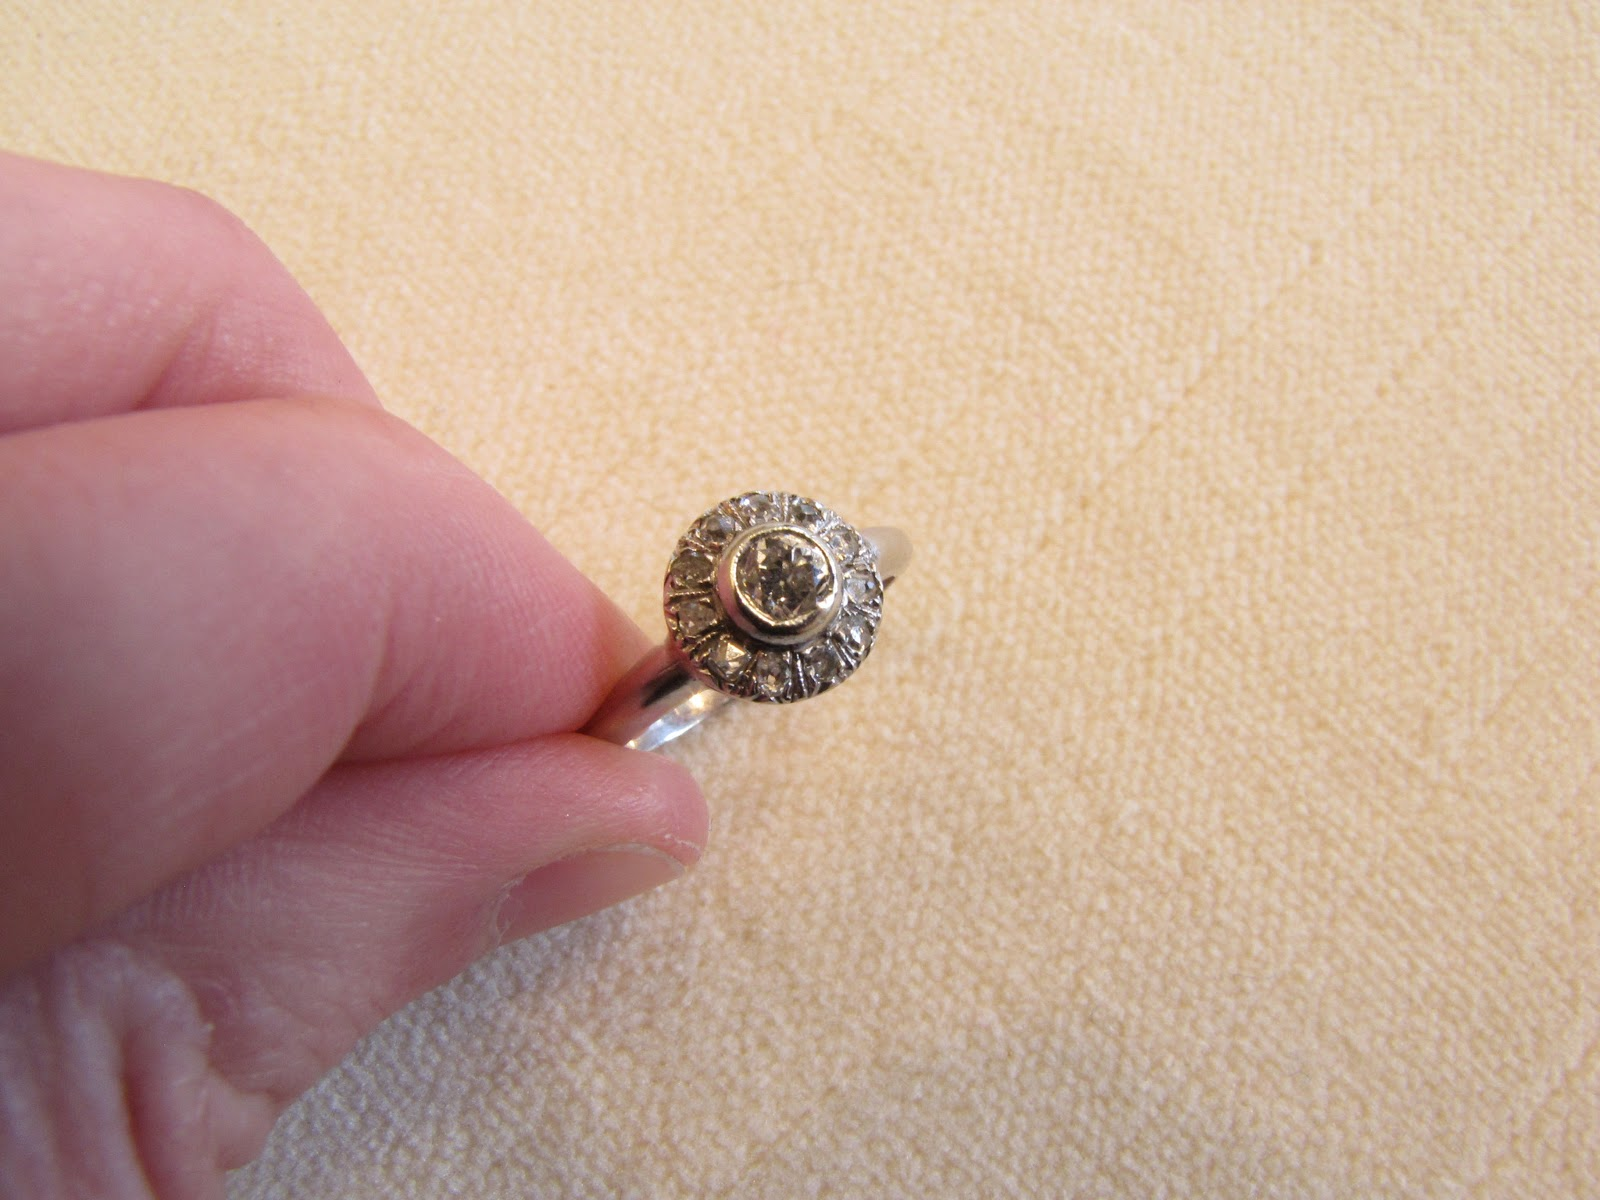 02 low profile wedding ring As with all of the rings we prize this has a nice modern low profile These also just seem to universally look good on all fingers Beautiful